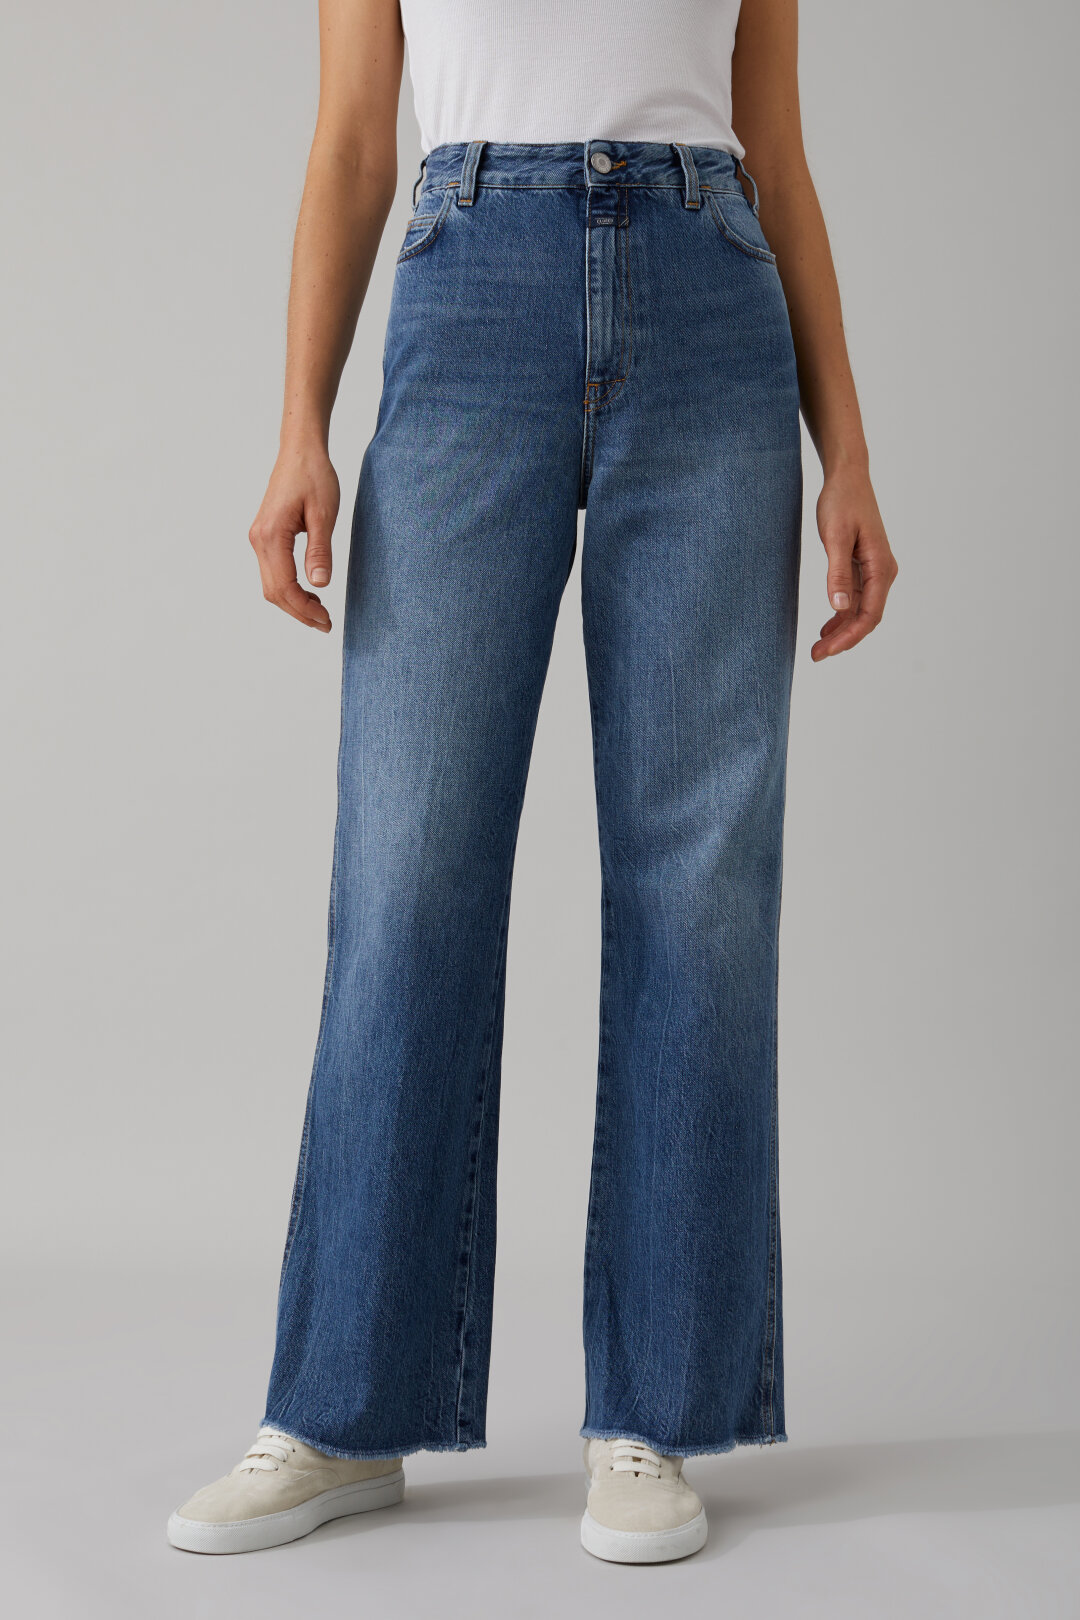 Kathy Historic Indigo Denim